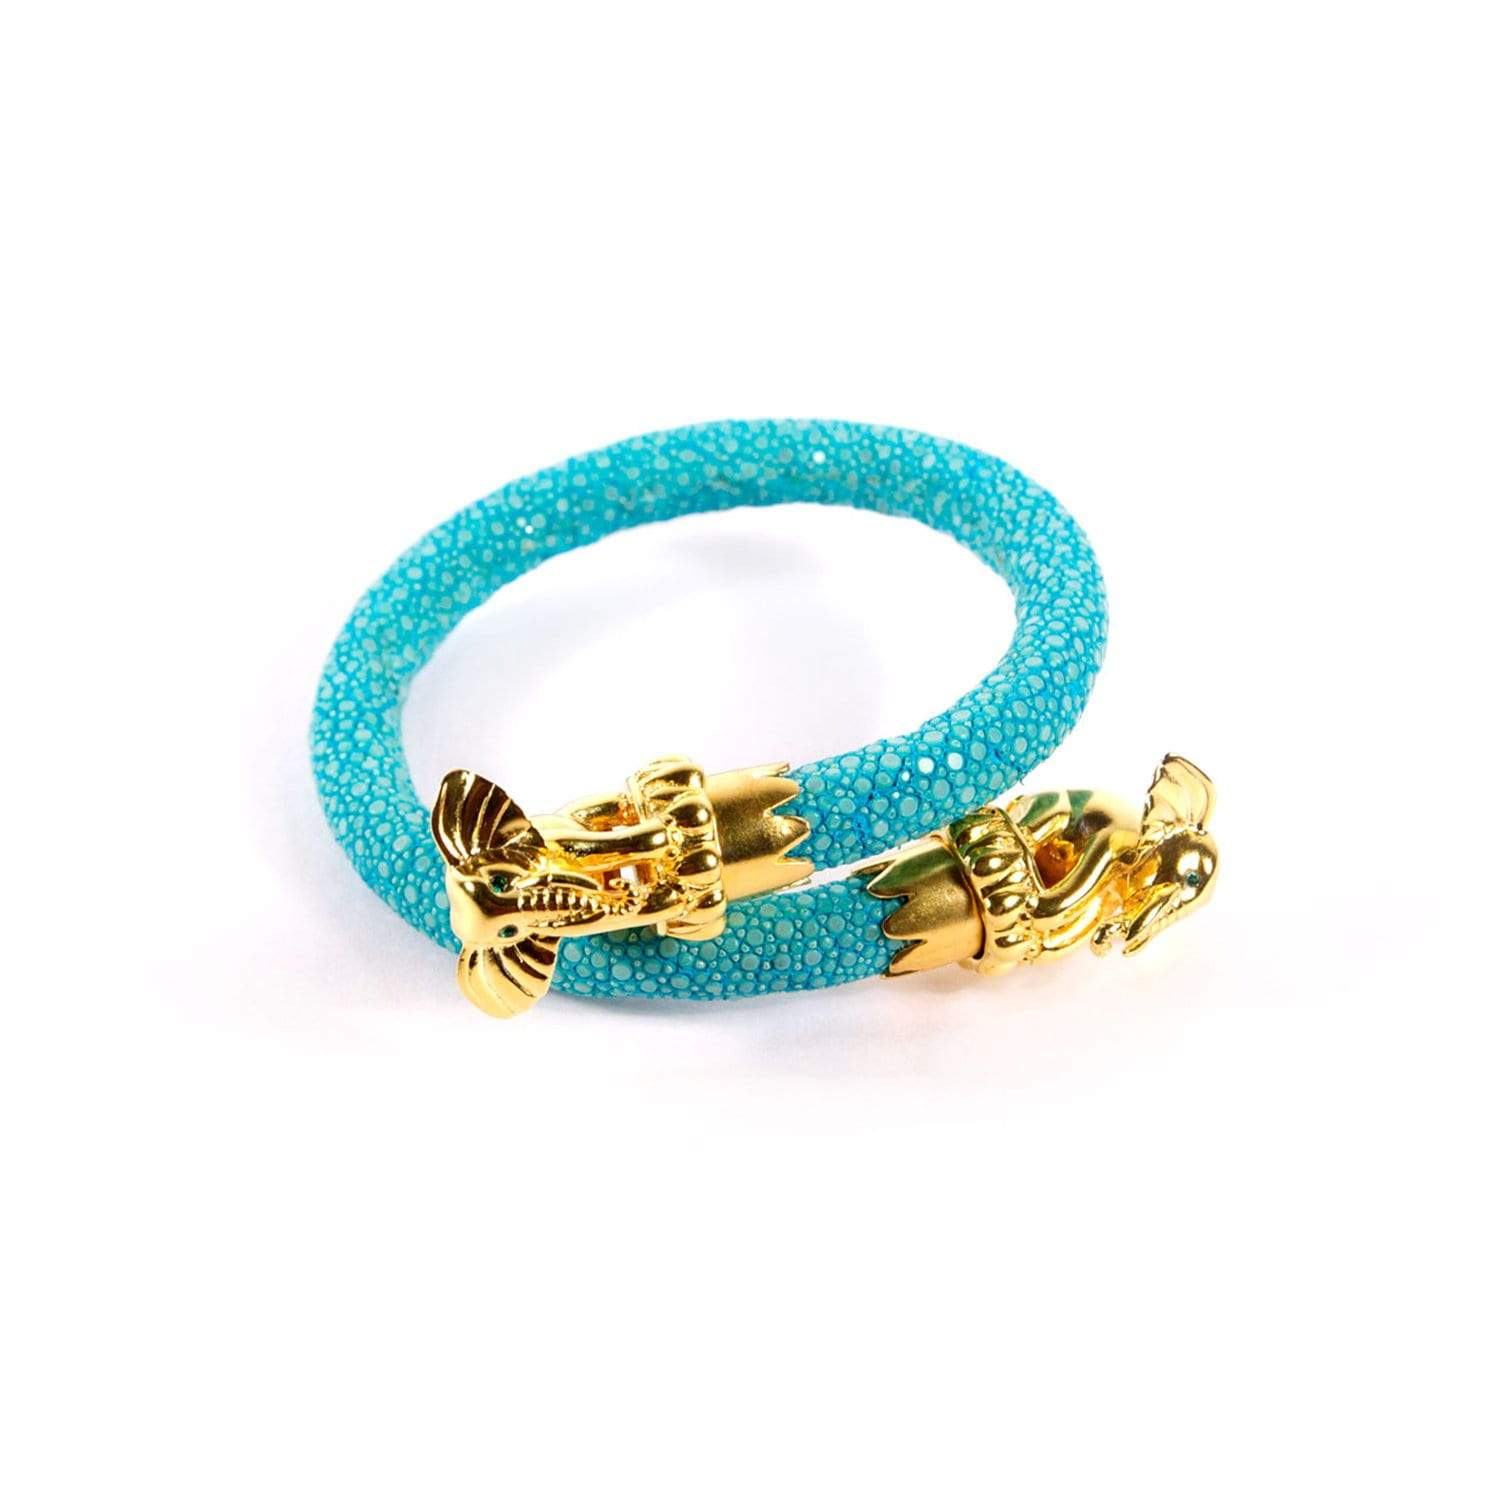 Ganesha End Caps on Turquoise Stingray Wrist Wrap | BuDhaGirl